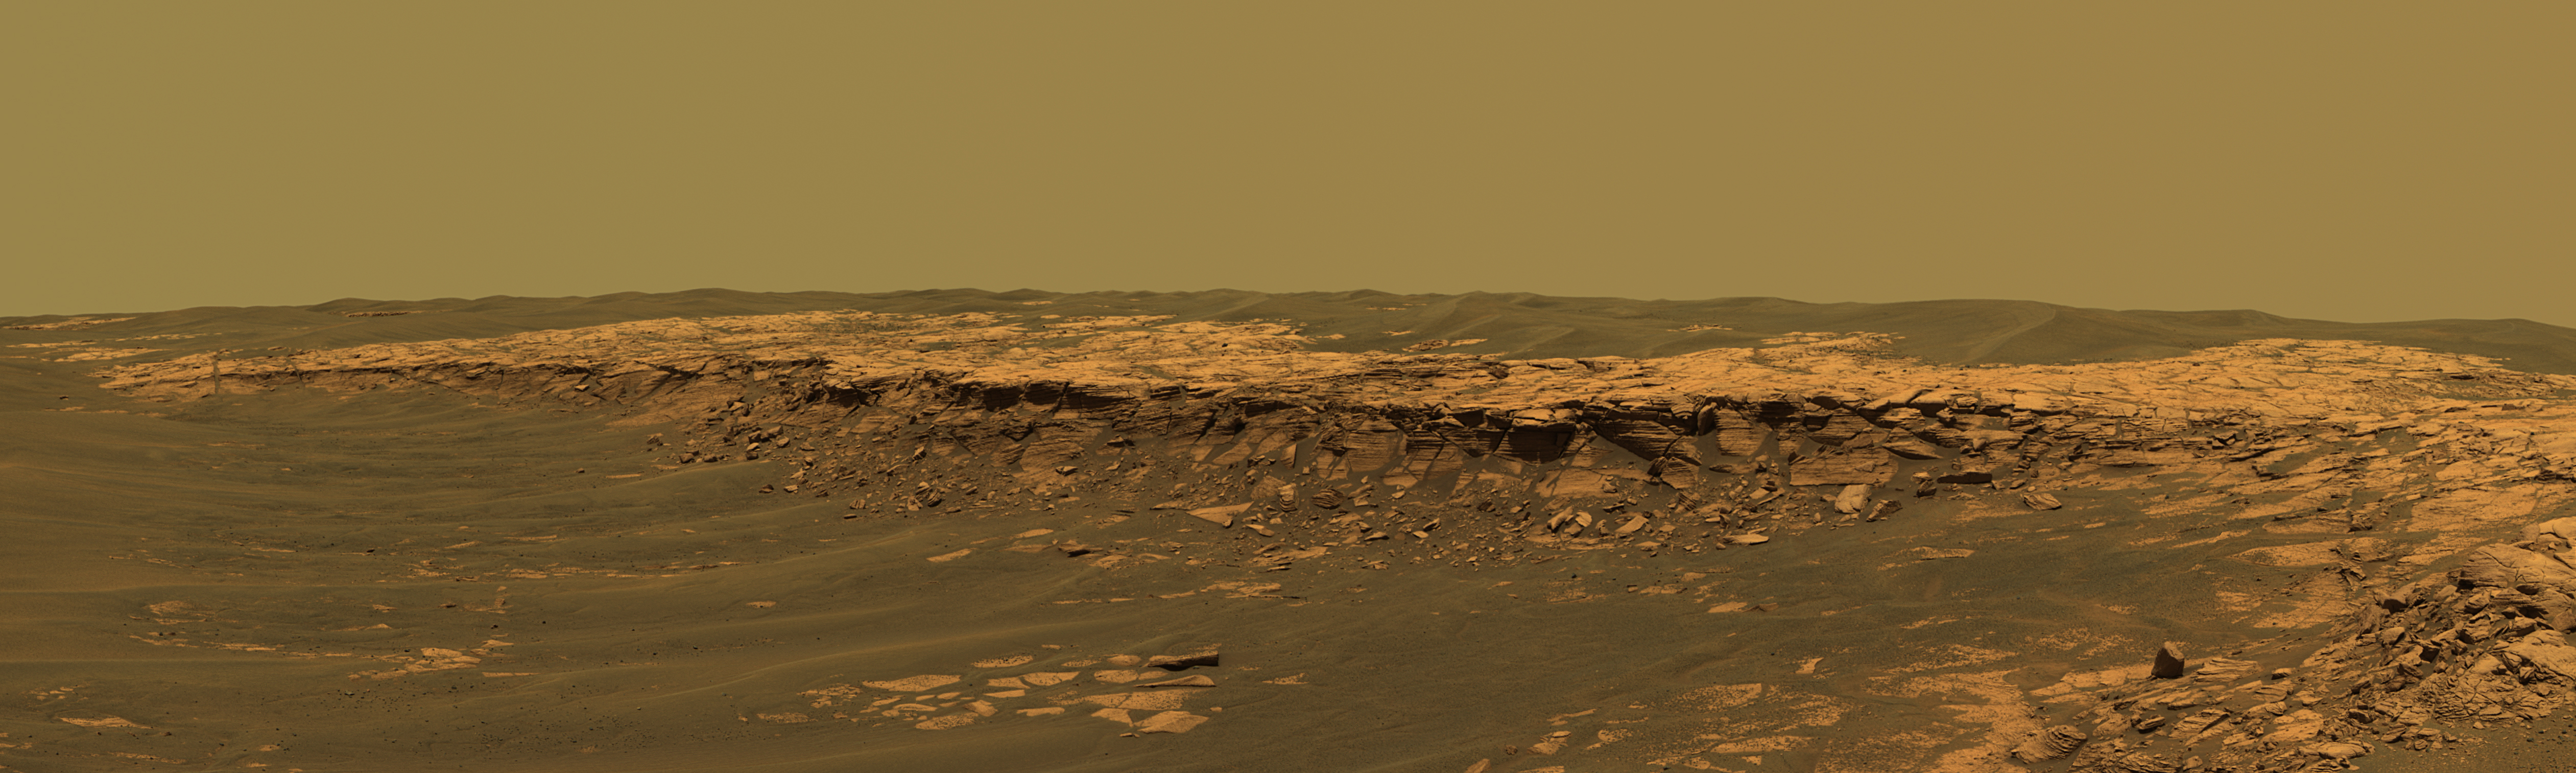 opportunity rover on mars - photo #20